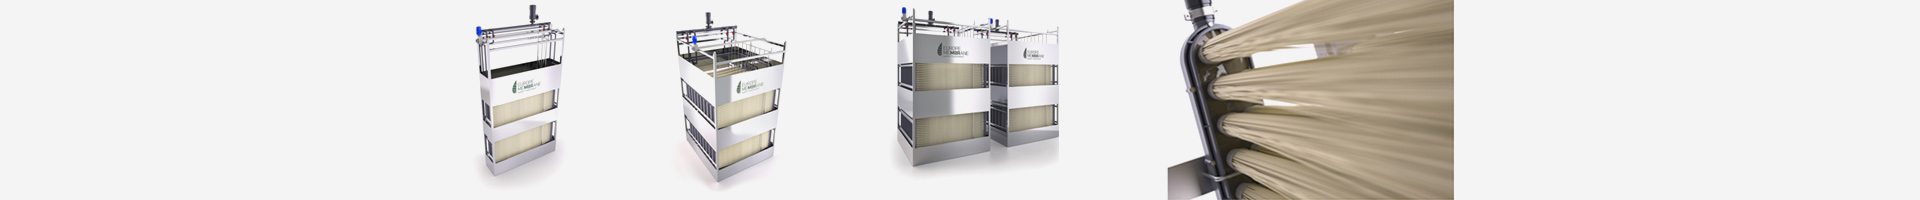 Ultrafiltration using membrane cassettesEuropeMembrane